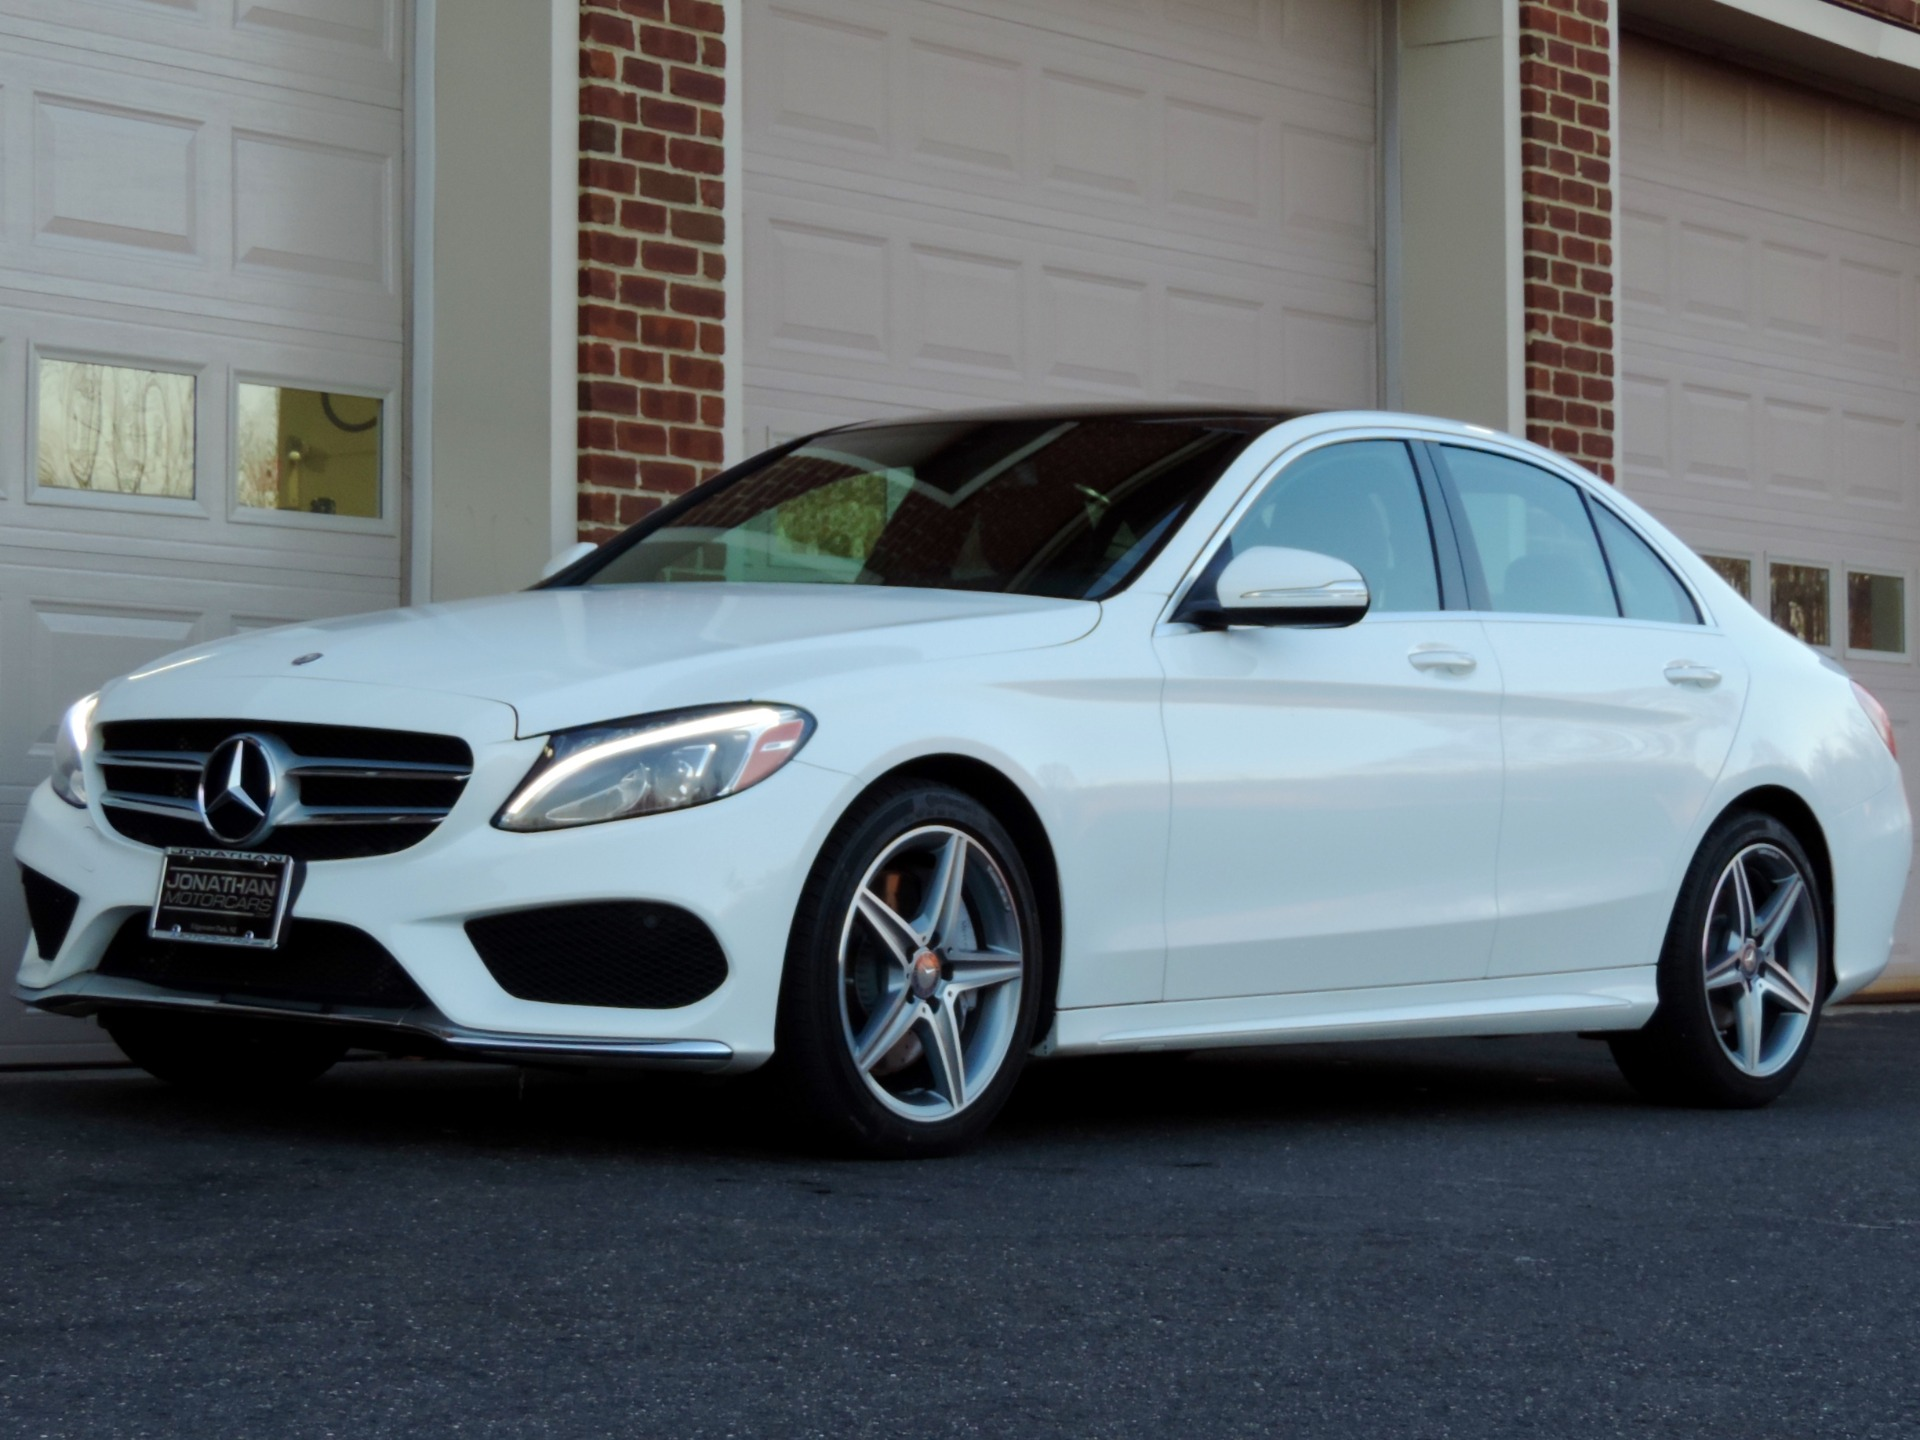 2015 mercedes benz c class c 300 4matic sport stock 022925 for sale near edgewater park nj. Black Bedroom Furniture Sets. Home Design Ideas